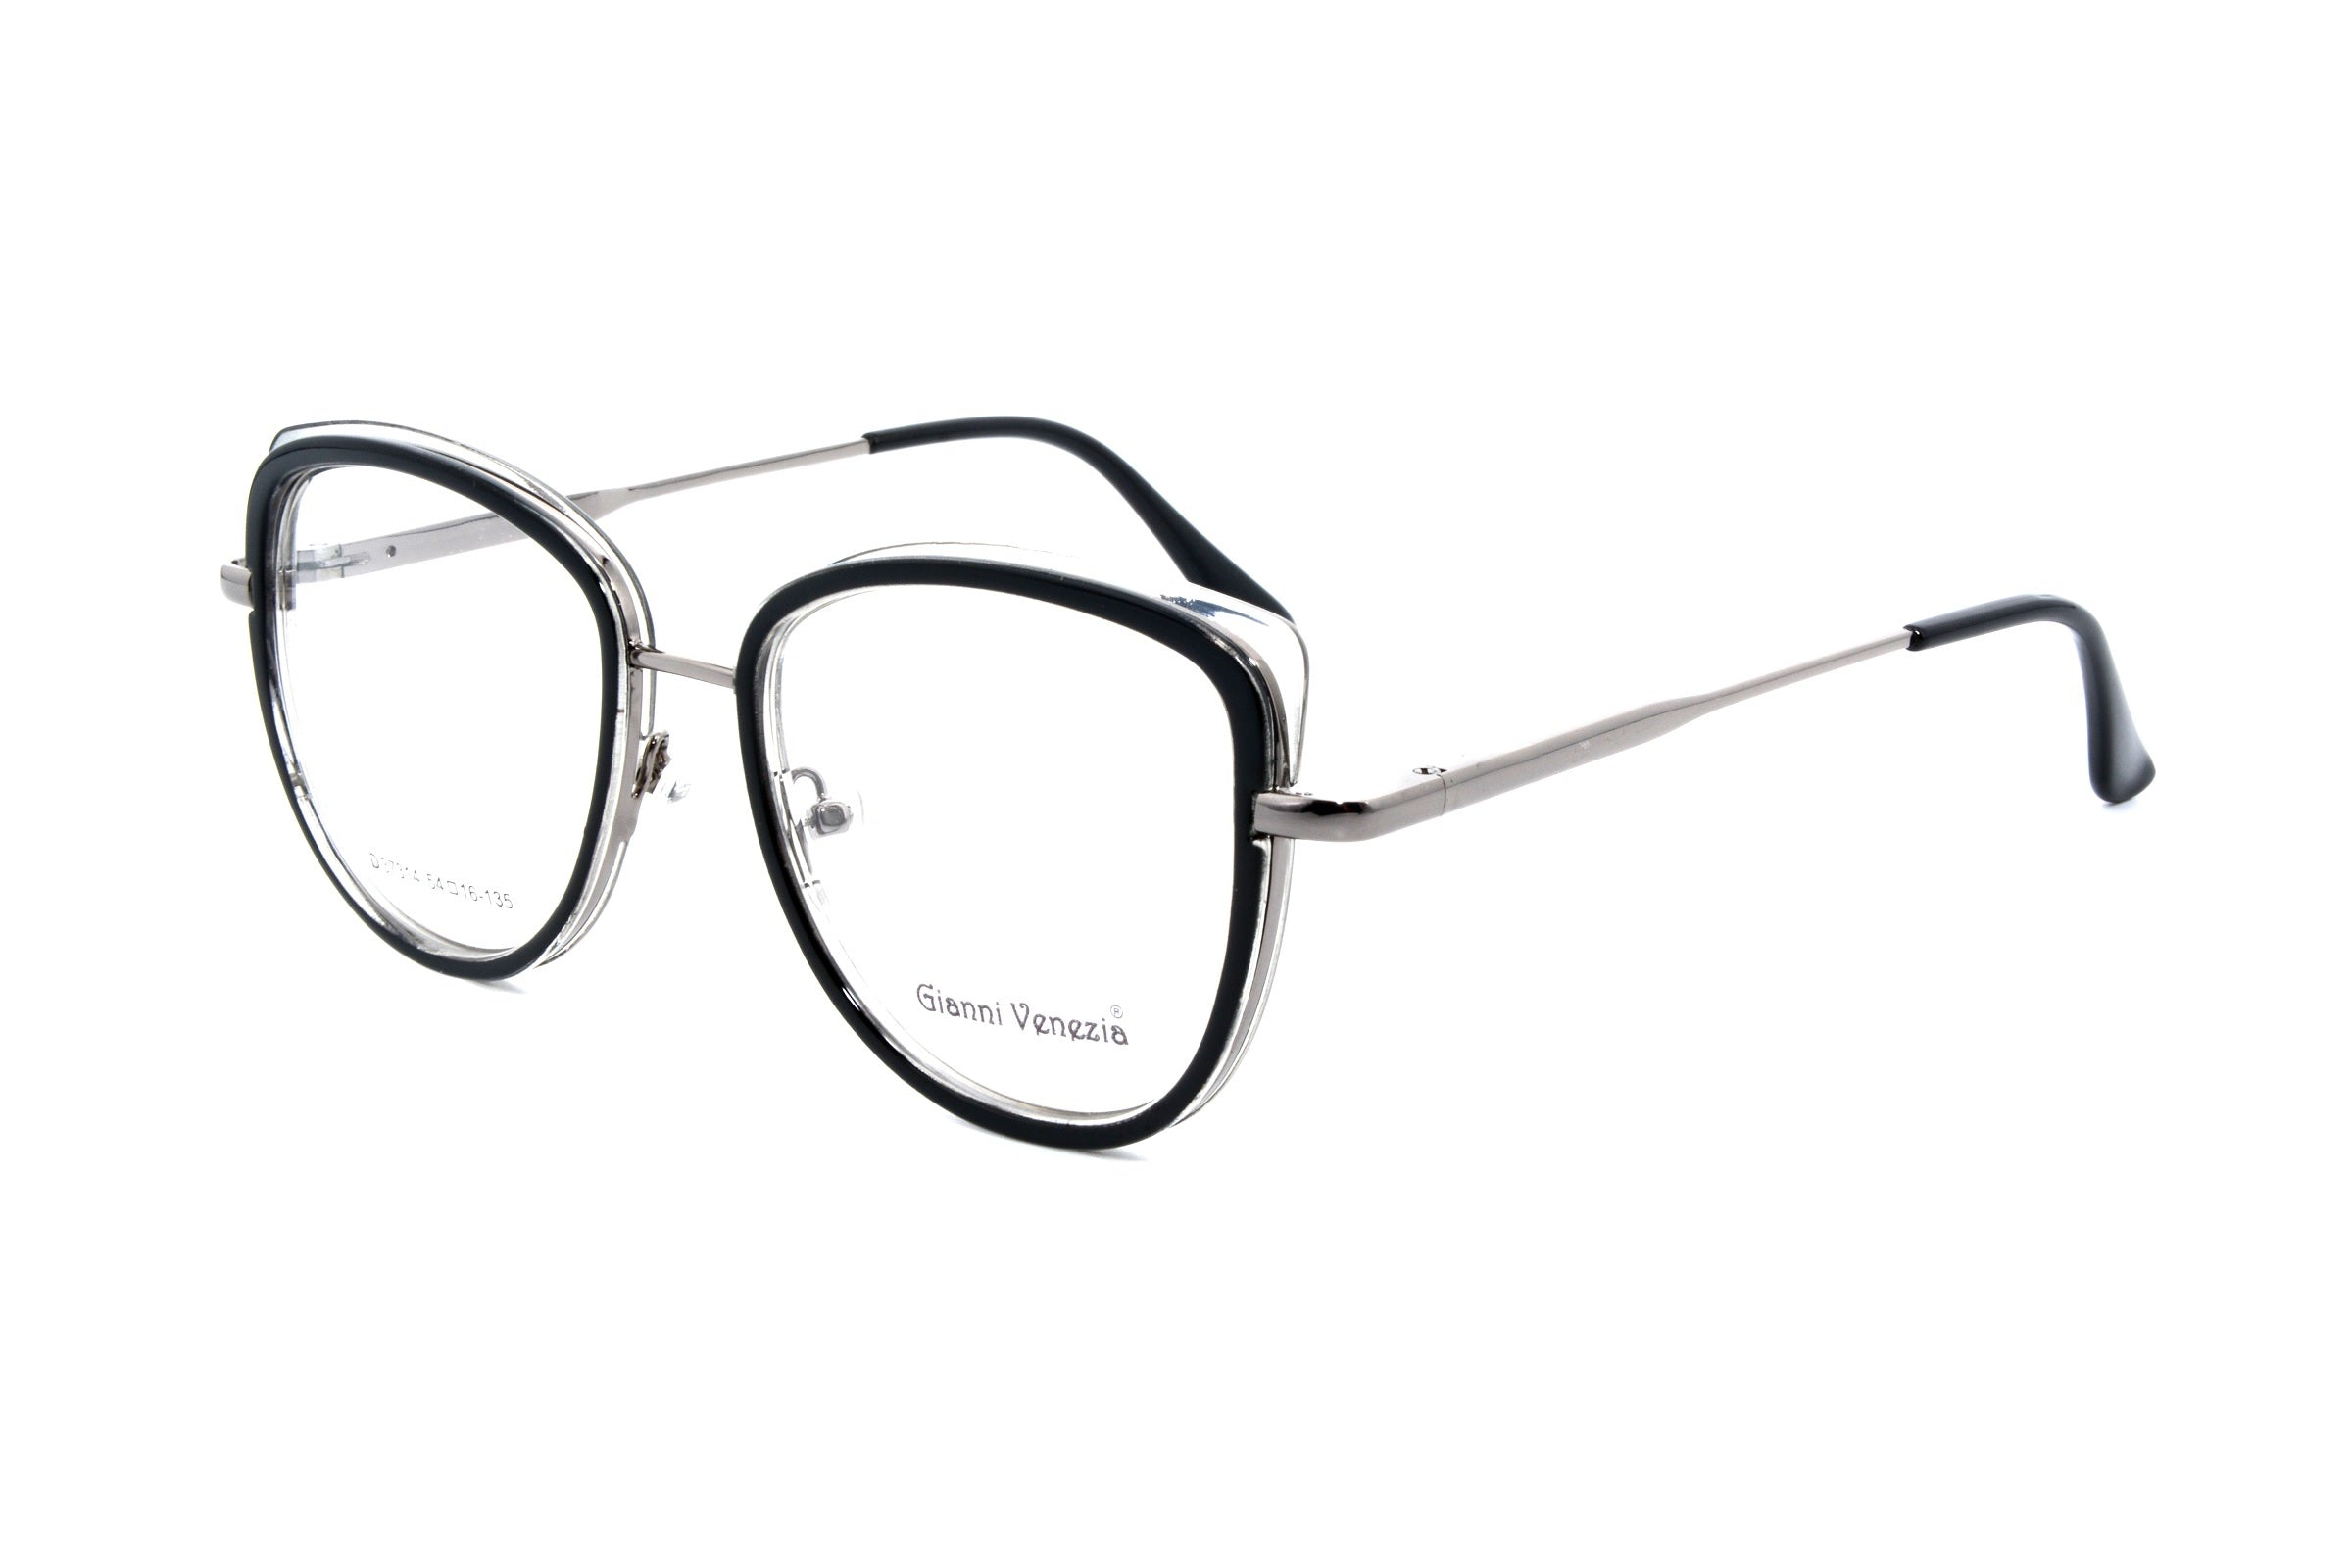 Gianni Vennezia eyewear 37314, C1 - Optics Trading